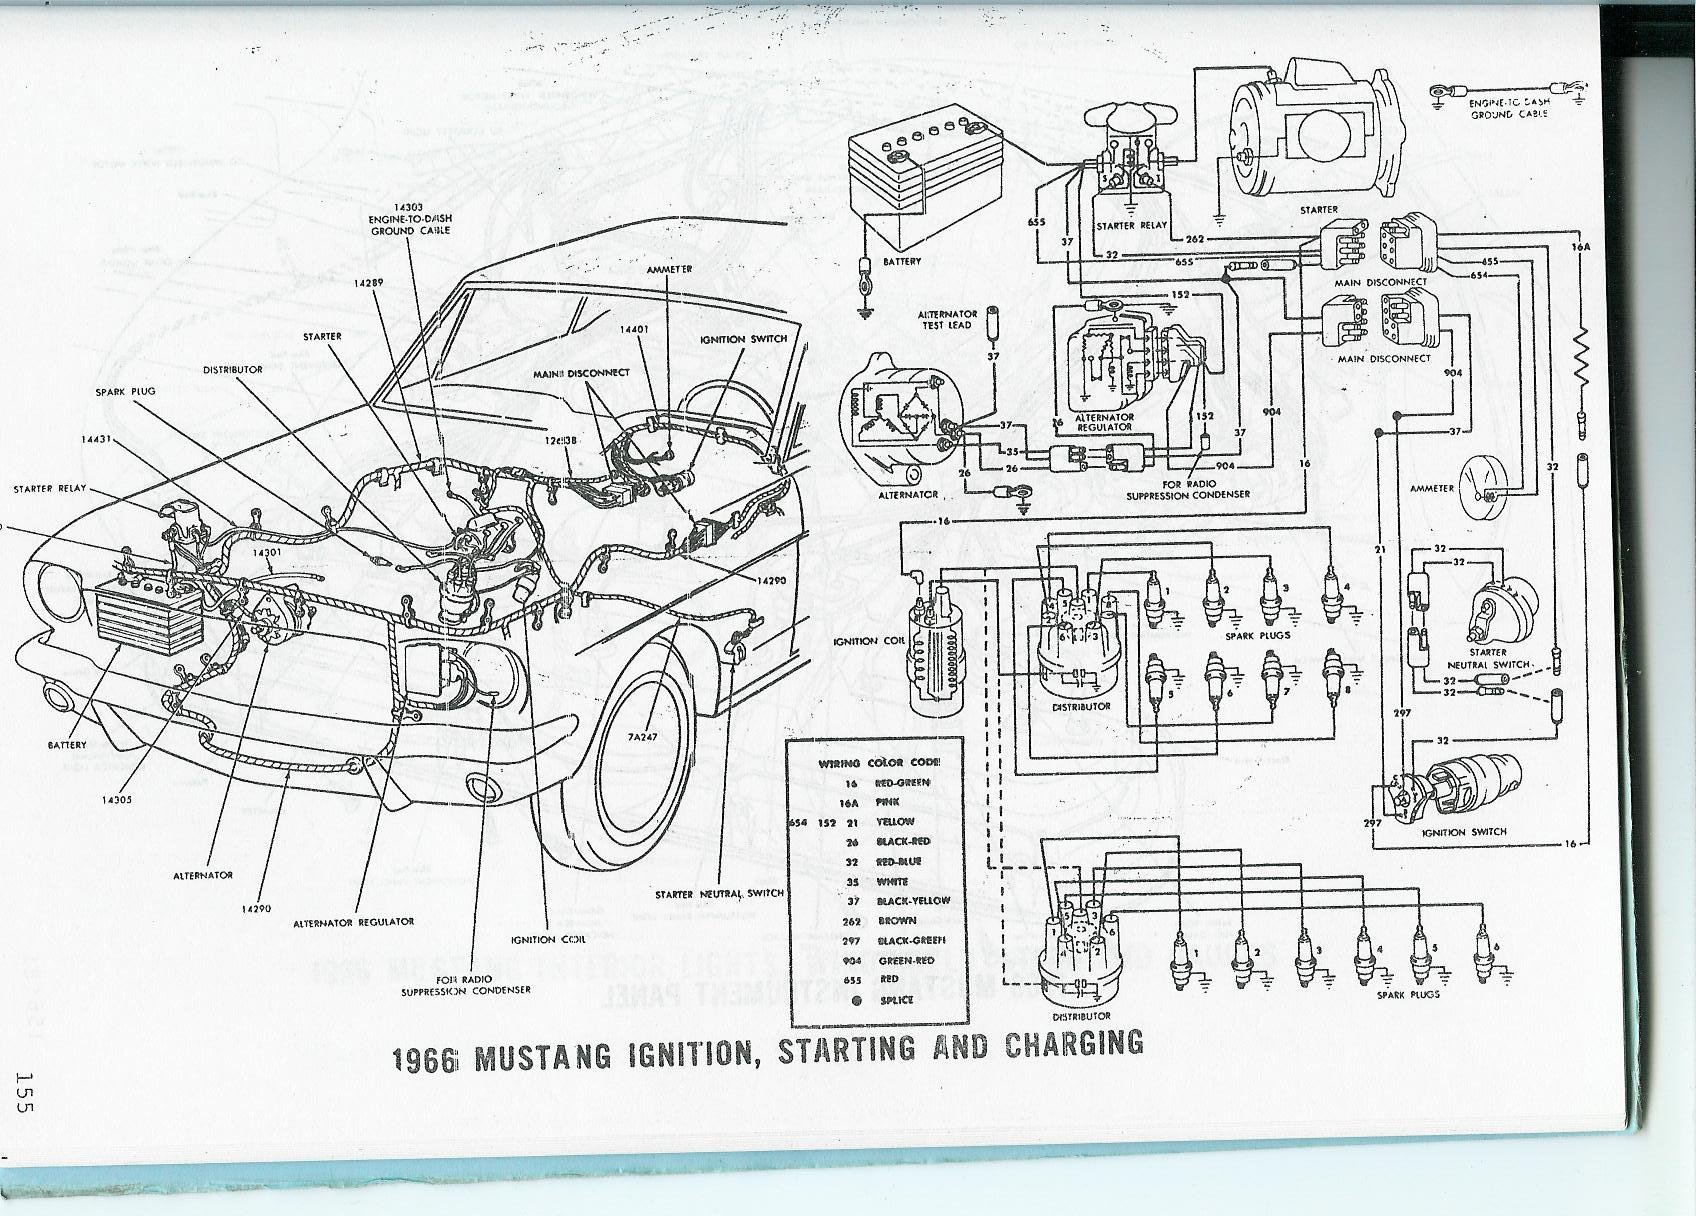 1966 Ford Mustang Wiring Diagram 32 Images 1965 Galaxie 39626d1202705125 Ignition Starting Charging Forum